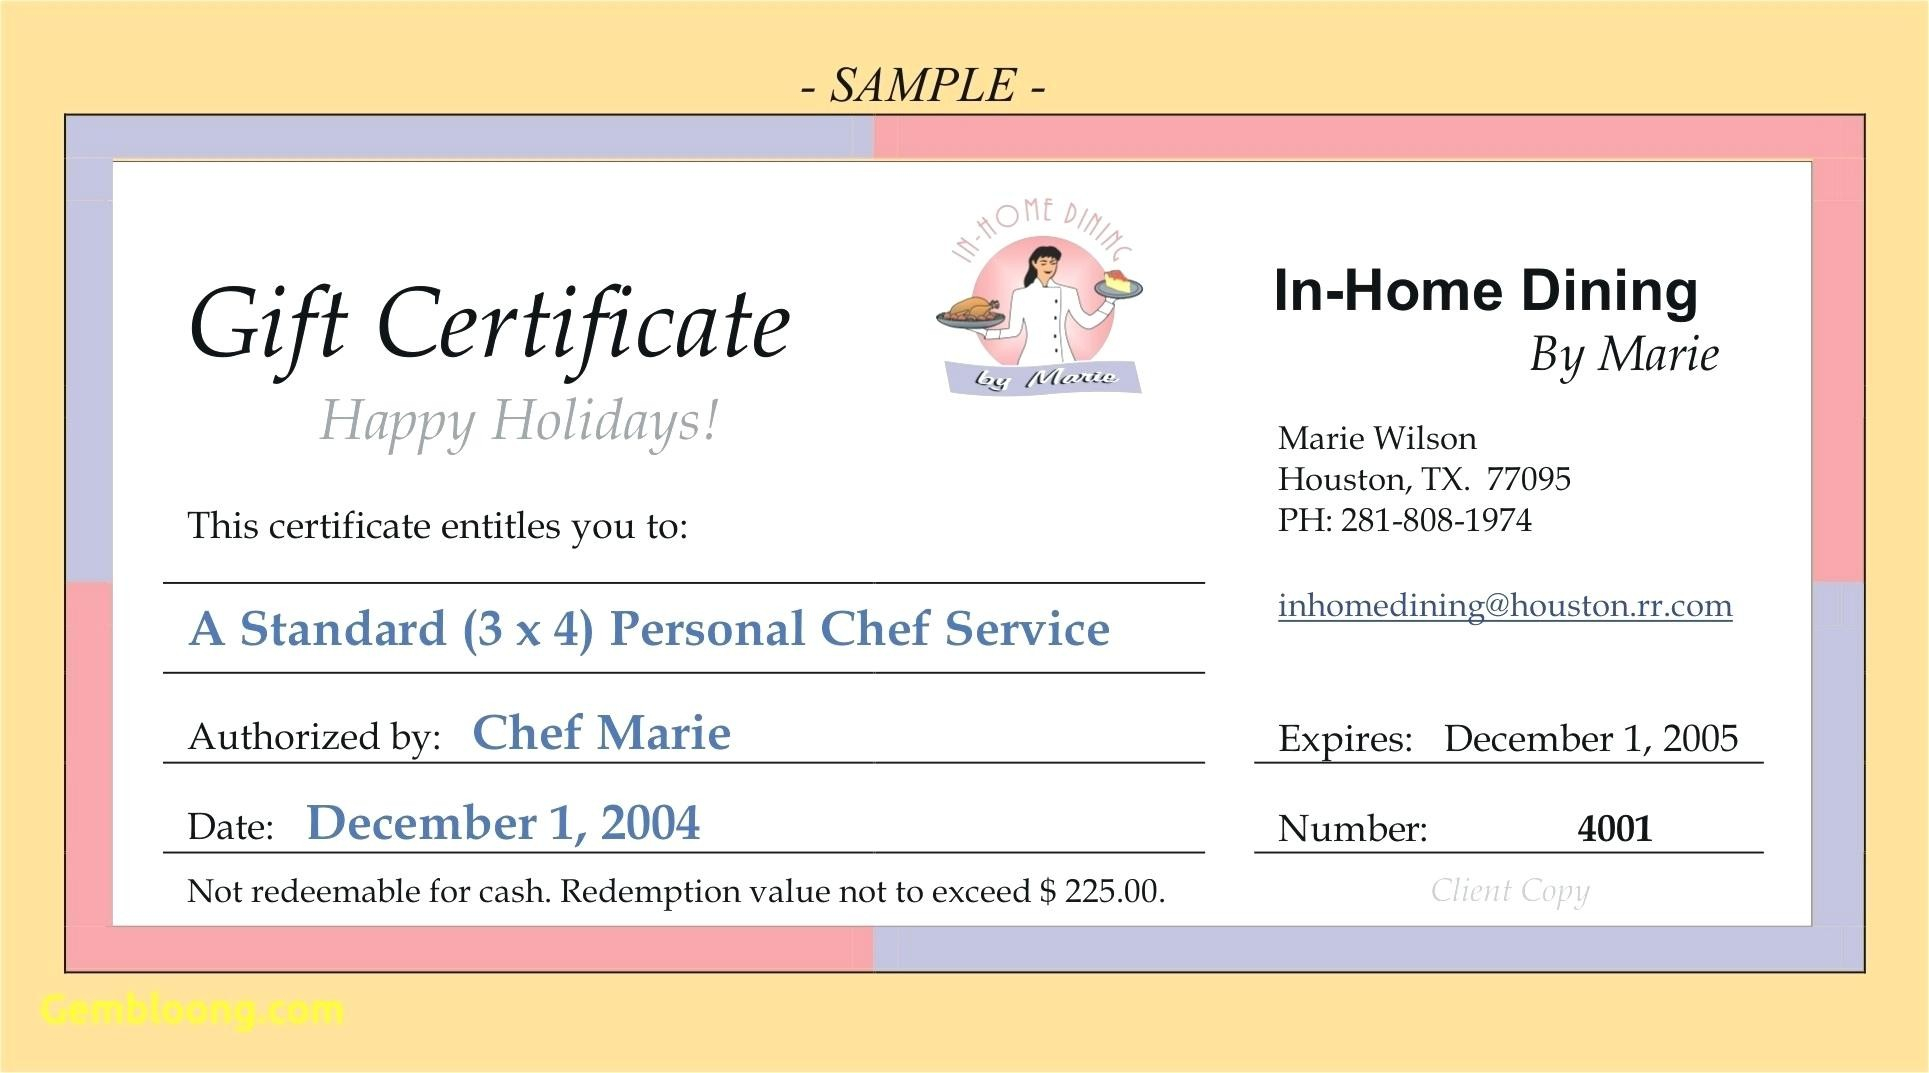 Certificate Templates Free Uk Filename  Elsik Blue Cetane With This Certificate Entitles The Bearer To Template